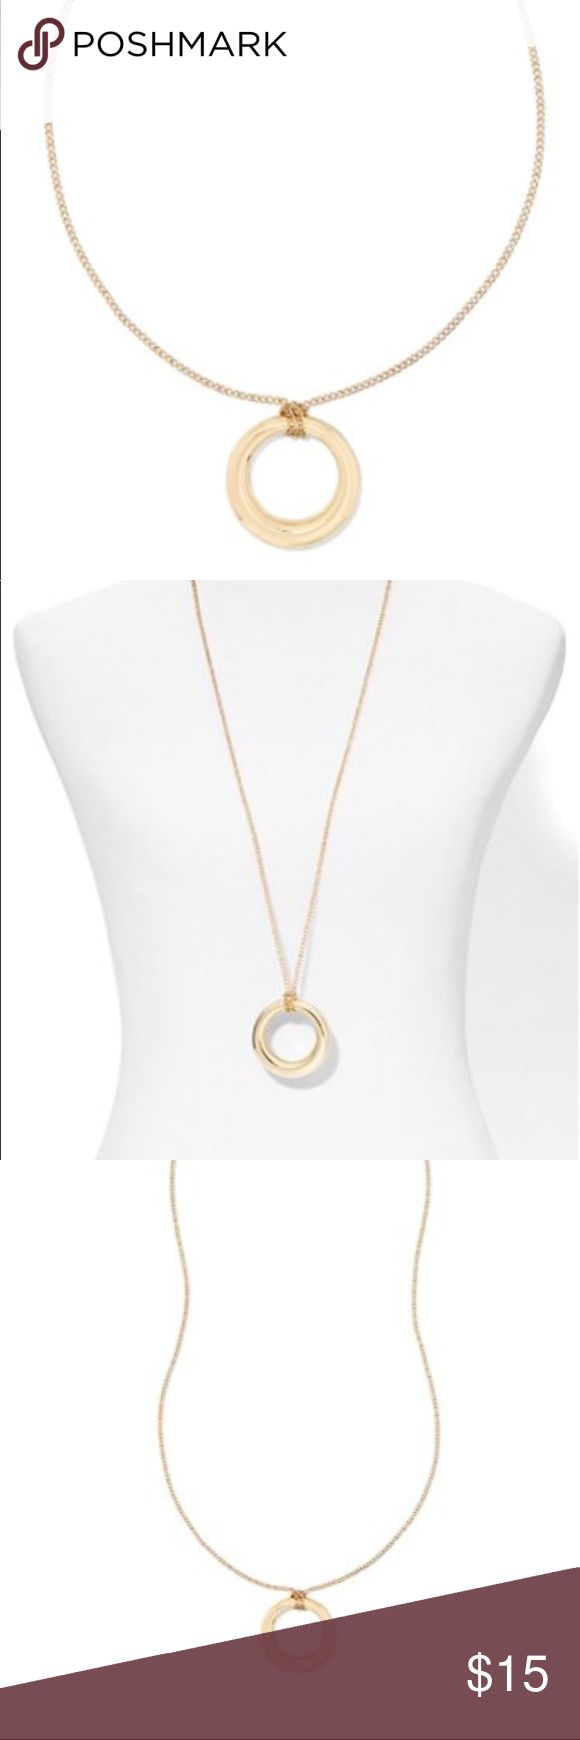 Long open circle pendant necklace An open-circle pendant adds a geo-chic finishing touch to the long necklace, enhanced by a high-shine finish.  Necklace length: 36 inches plus 3-inch extender. Mixed metal. Lobster clasp closure. Imported. Gold colored Jewelry Necklaces